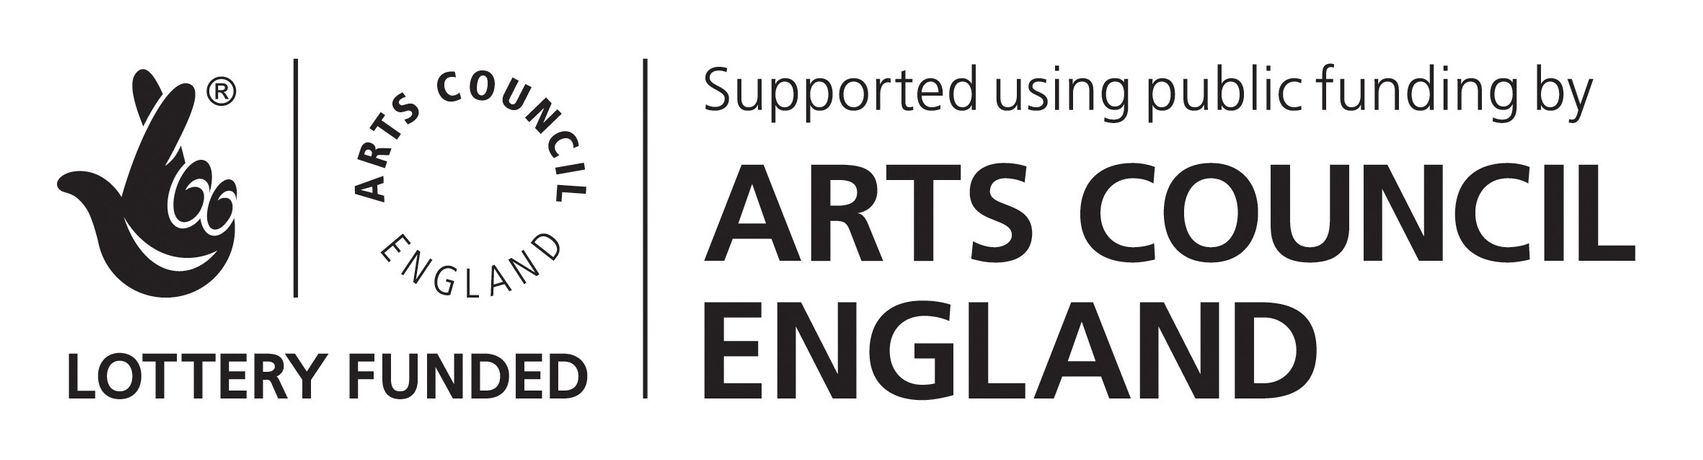 This exhibition as been kindly supported by Arts Council England.